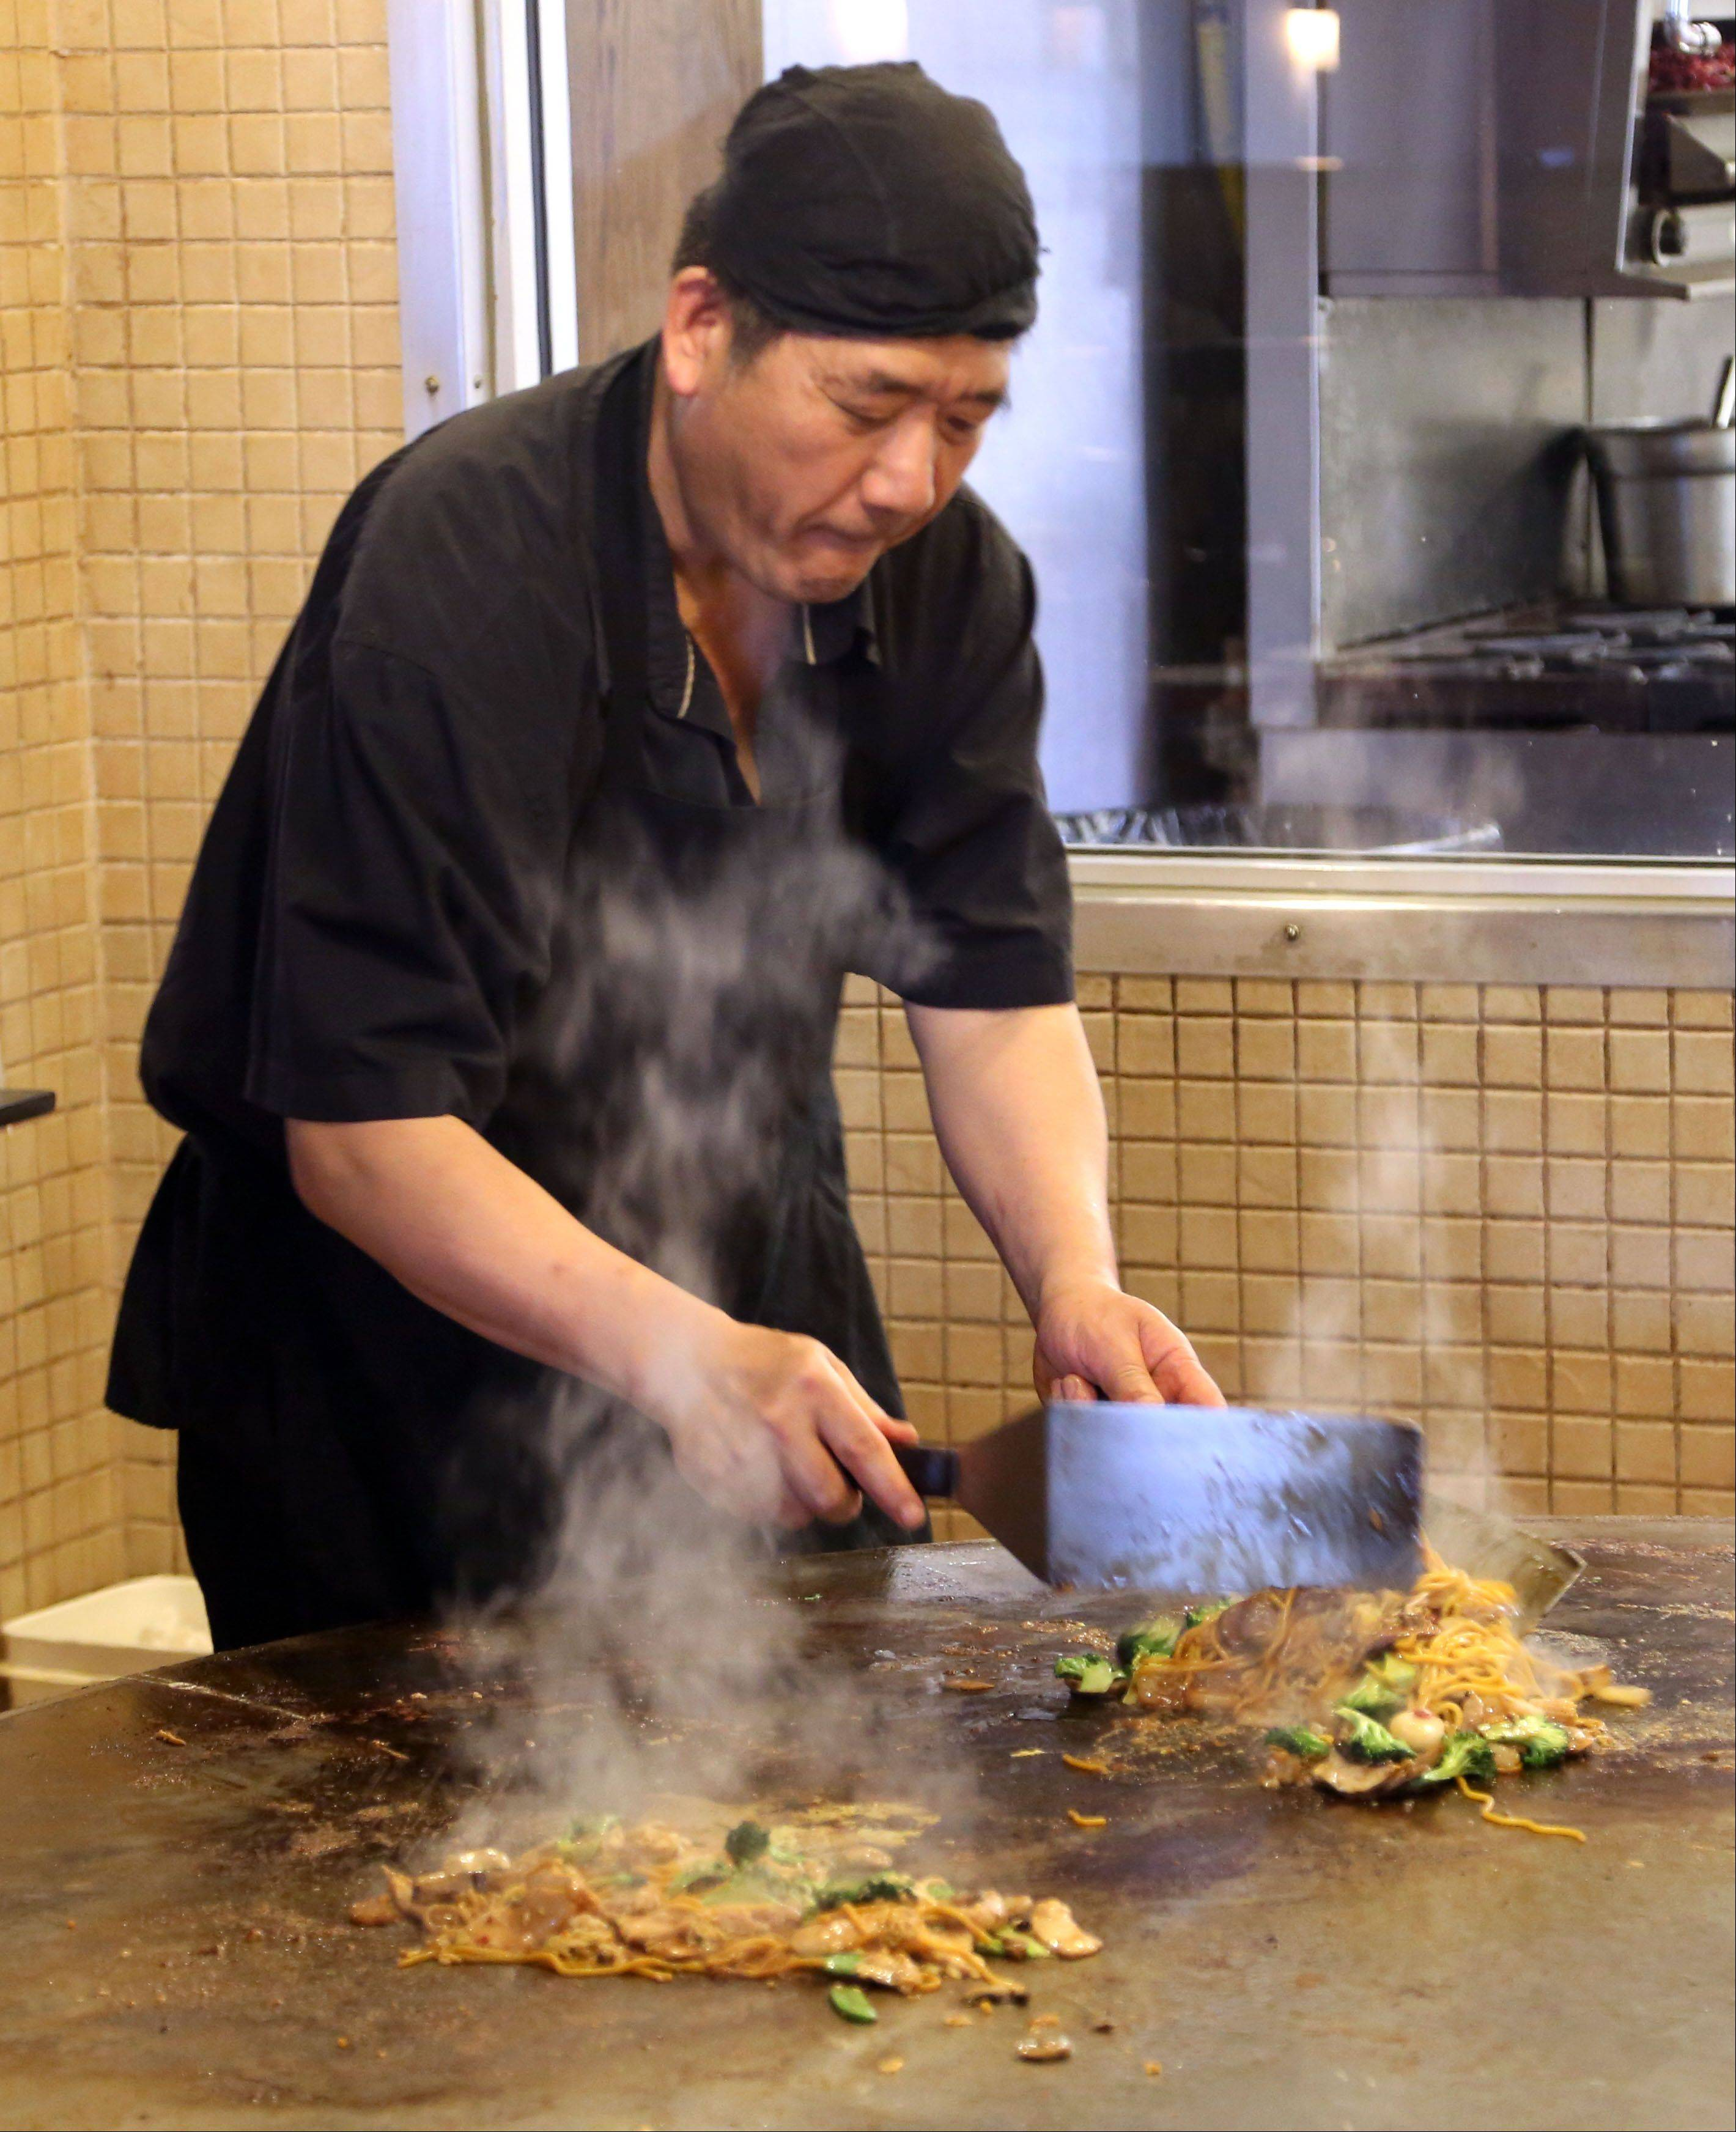 Wu Du works the Mongolian grill at Kawa Japanese Restaurant and Mongolian Grill in Grayslake.